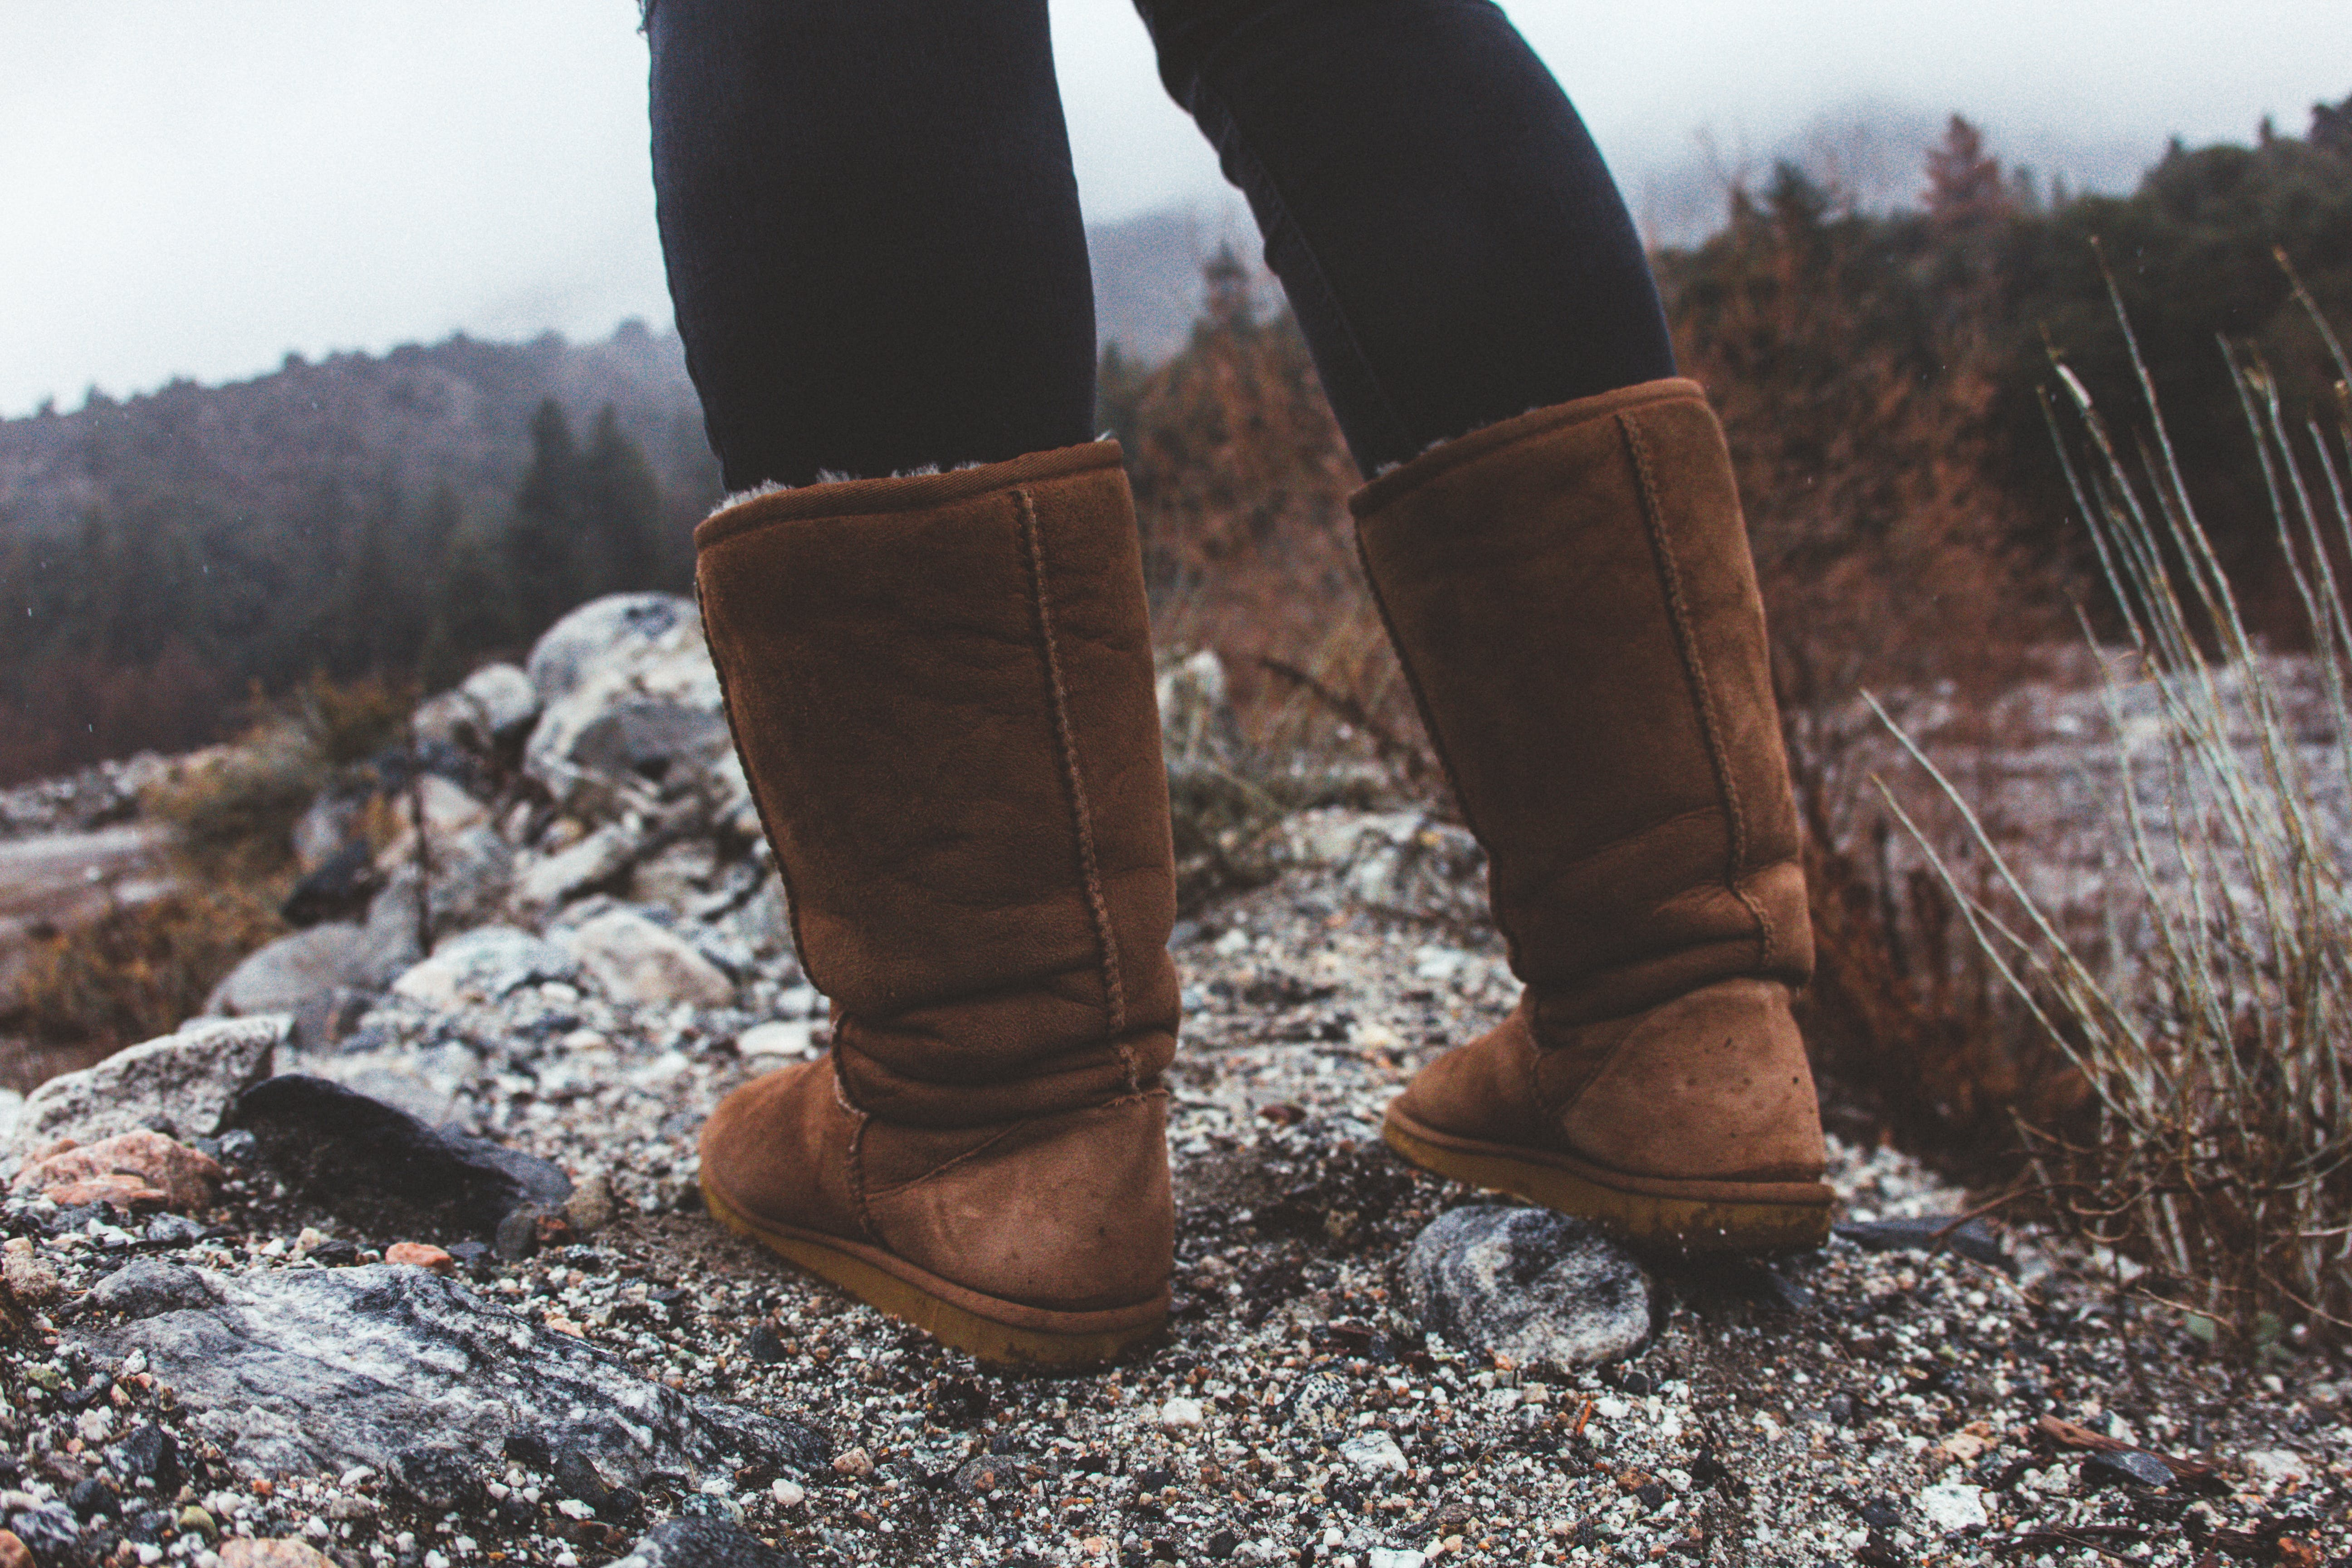 Close-Up Photography of a Person Wearing Brown Winter Boots